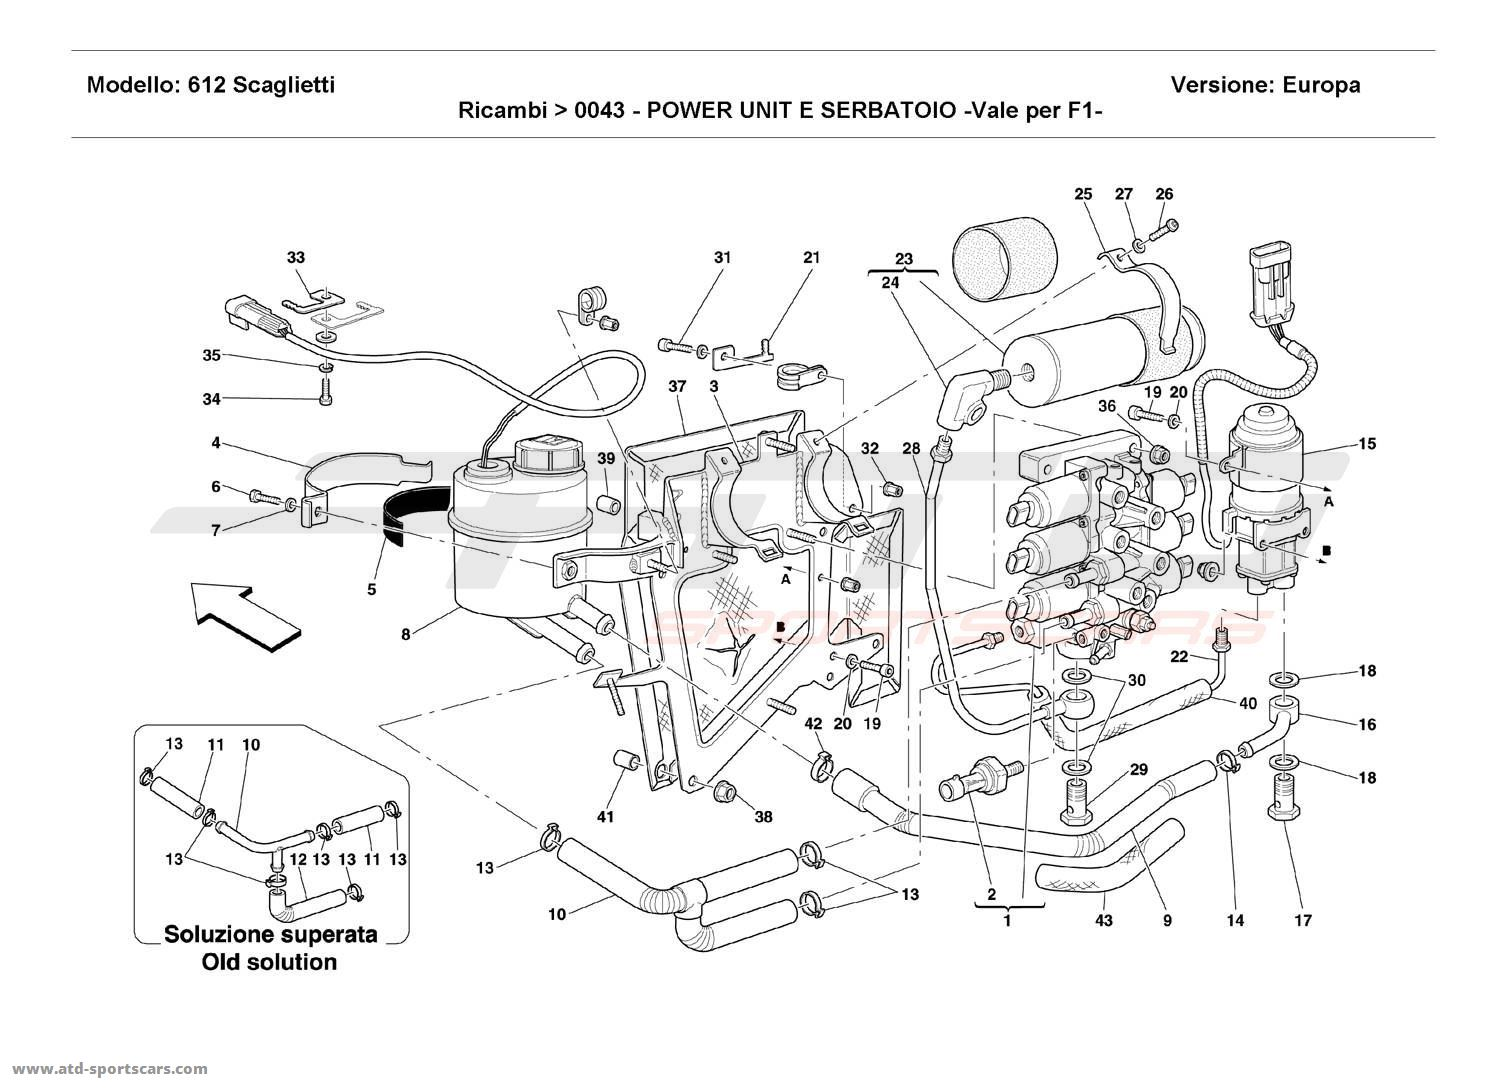 Ferrari 612 Scaglietti POWER UNIT AND TANK parts at ATD